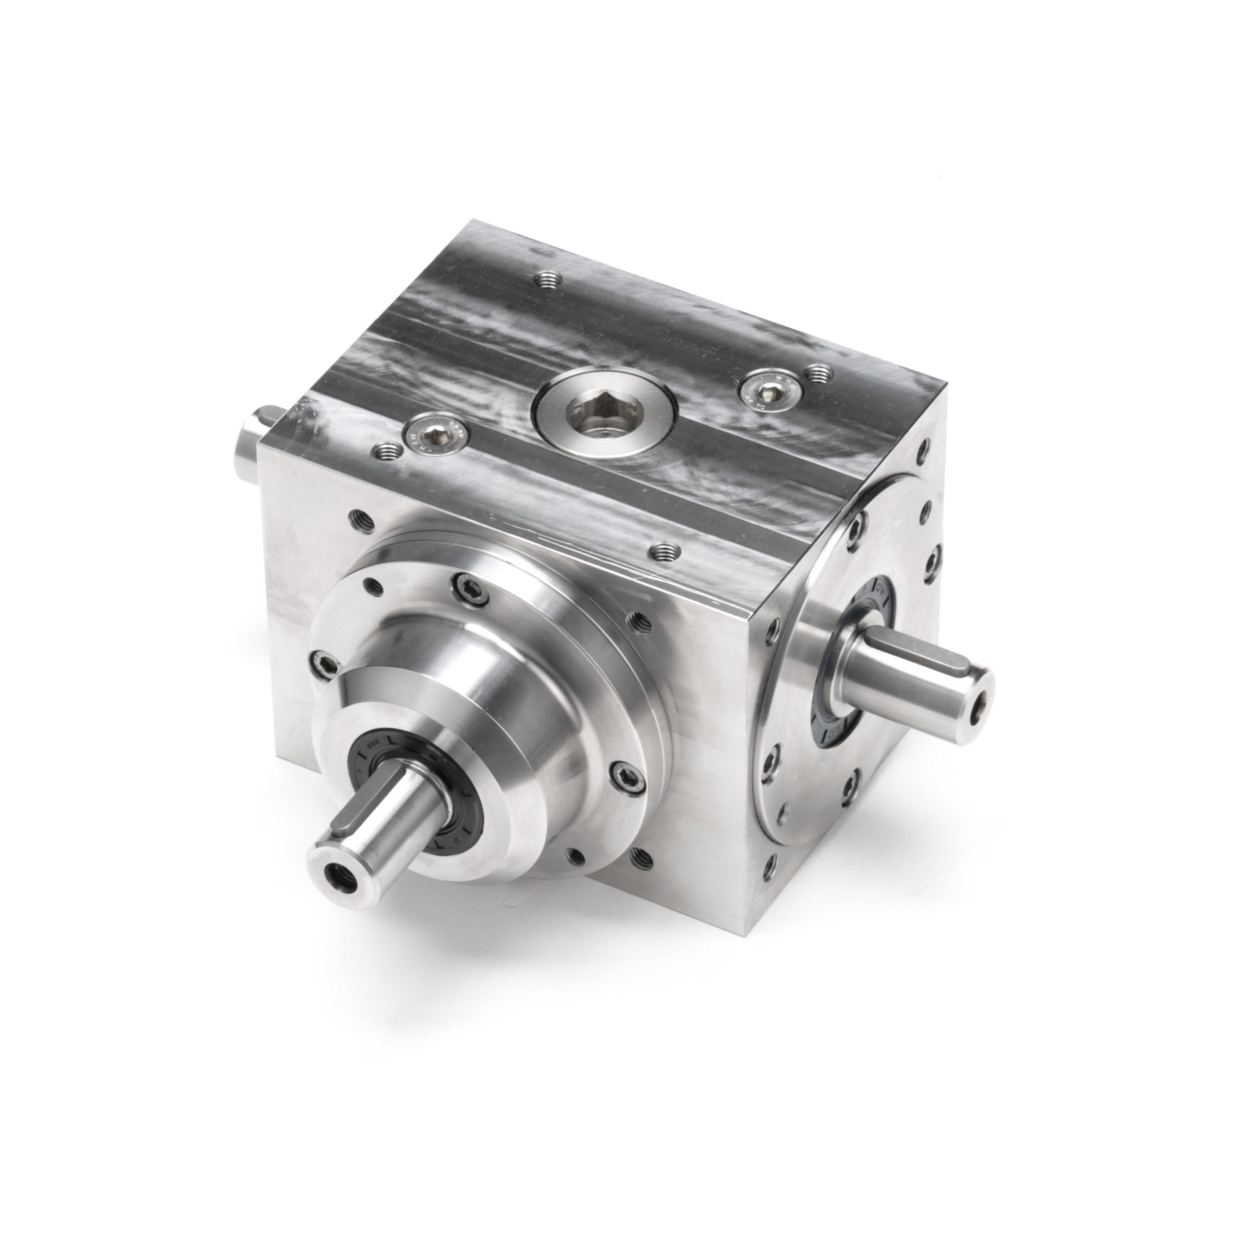 Tandler - Stainless Steel Spiral Bevel Gearbox